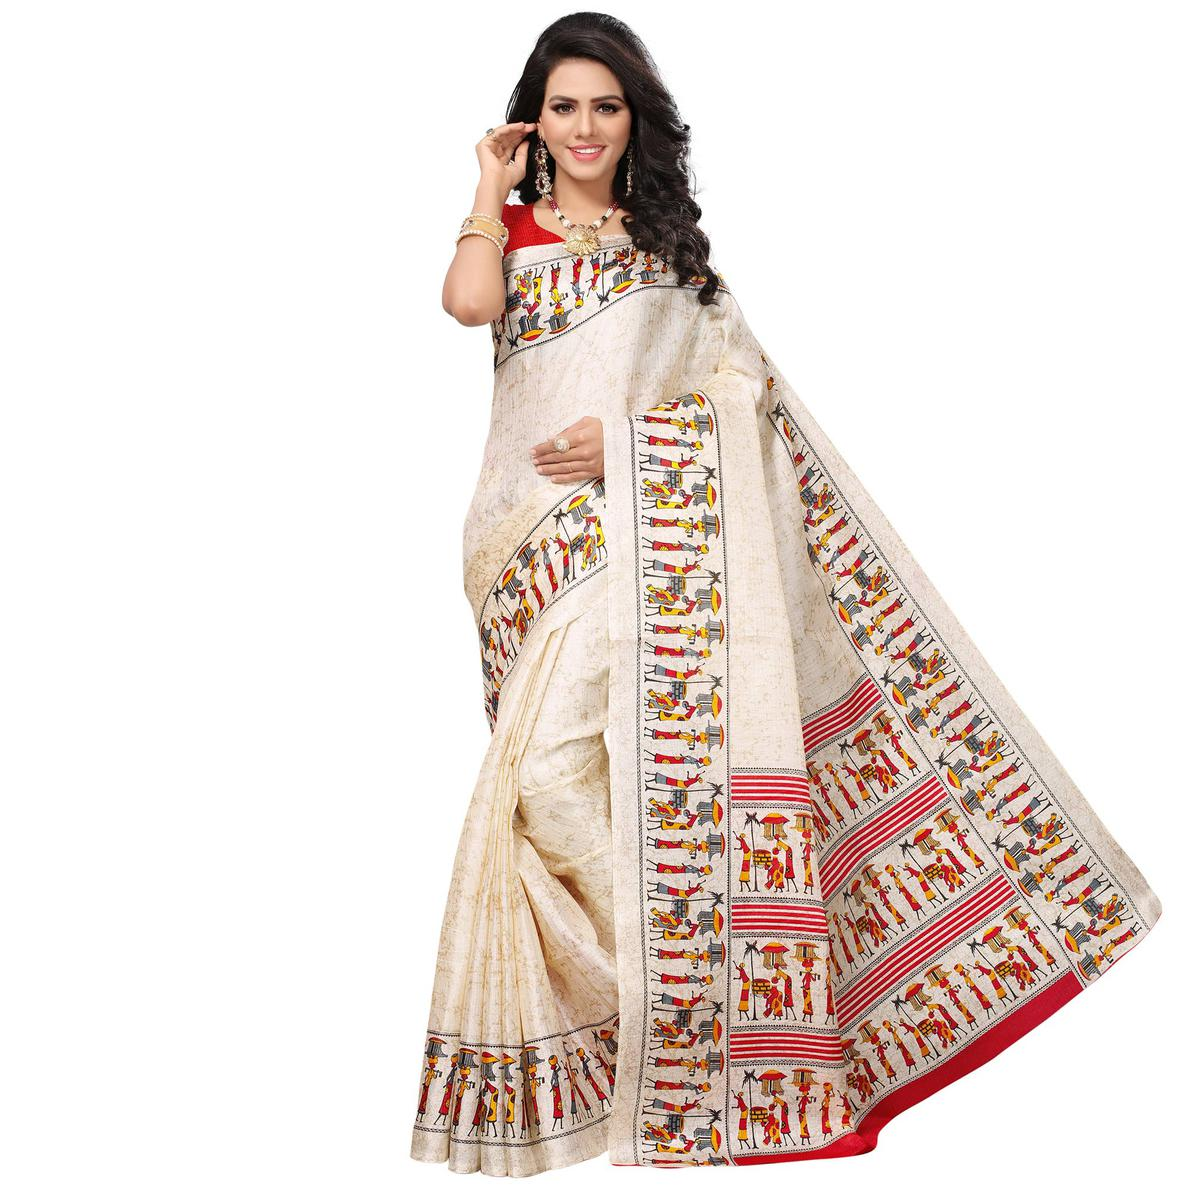 Capricious Off White - Red Colored Festive Wear Printed Khadi Silk Saree